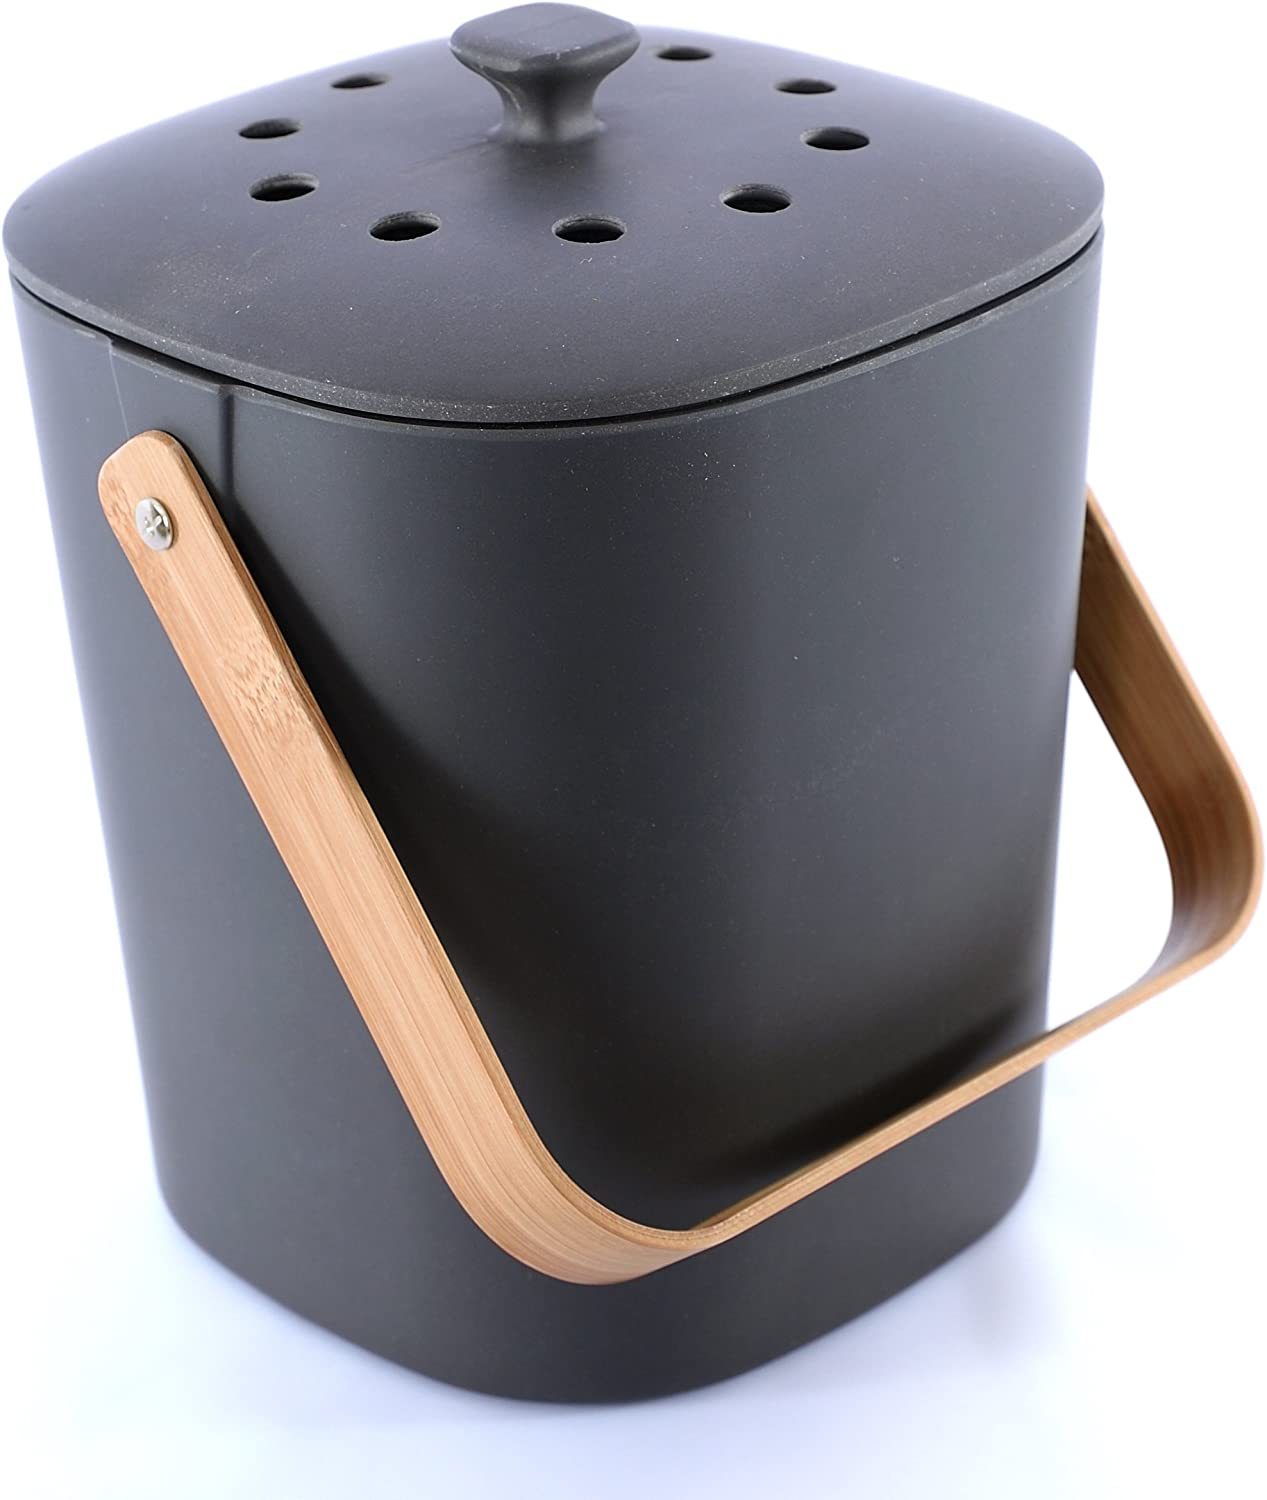 Bamboozle Food Composter, Indoor Food Compost Bin for Kitchen (Graphite): Kitchen & Dining